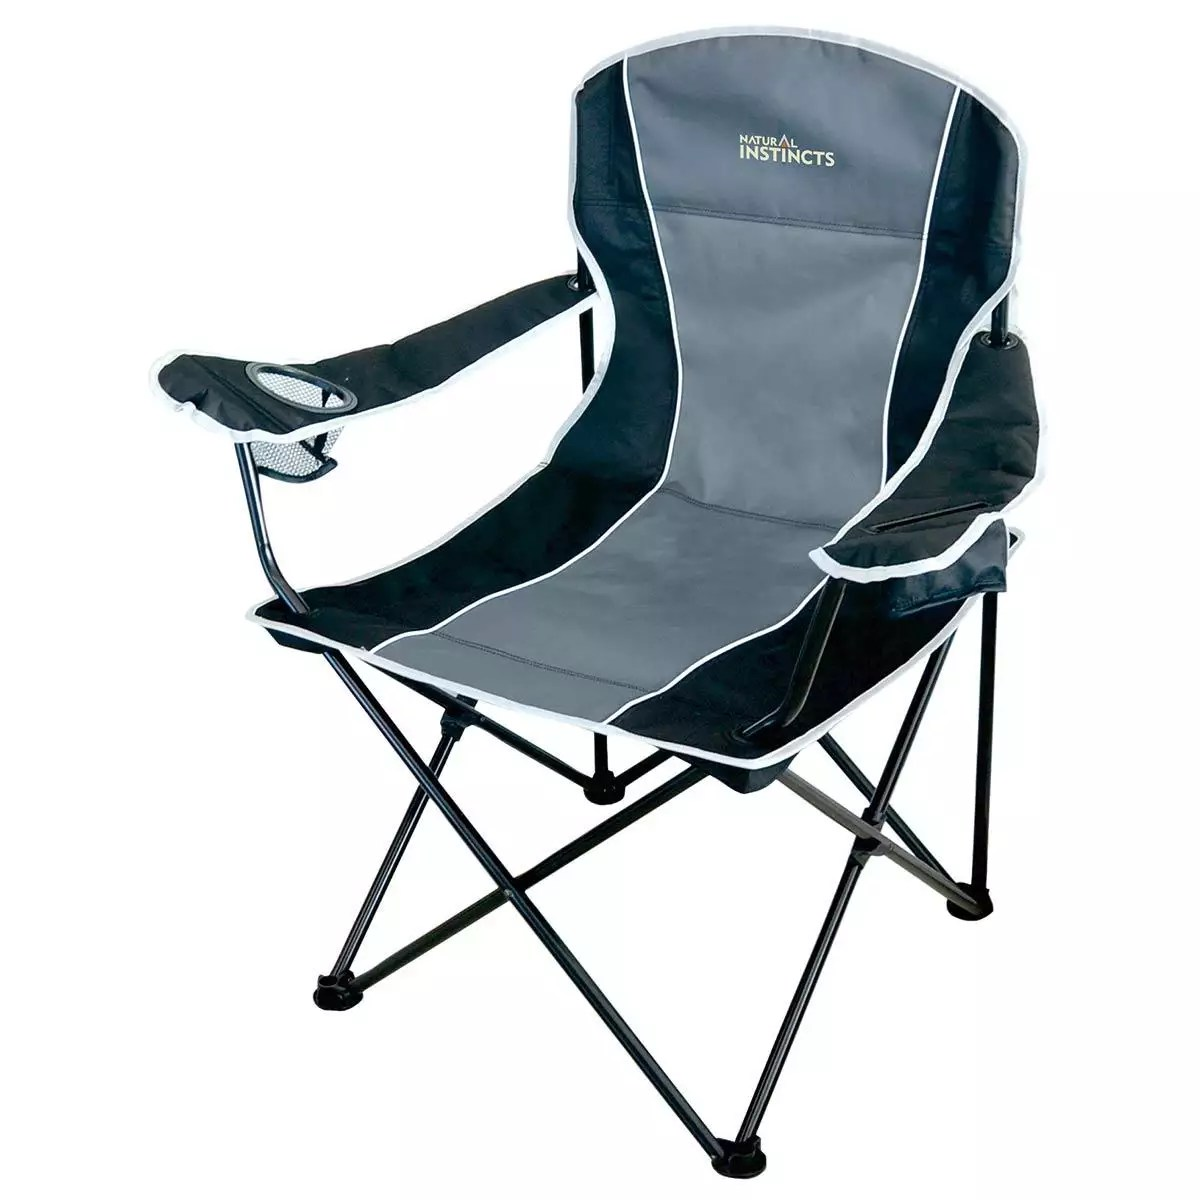 fishing chair no arms linen dining seat covers natural instincts strap